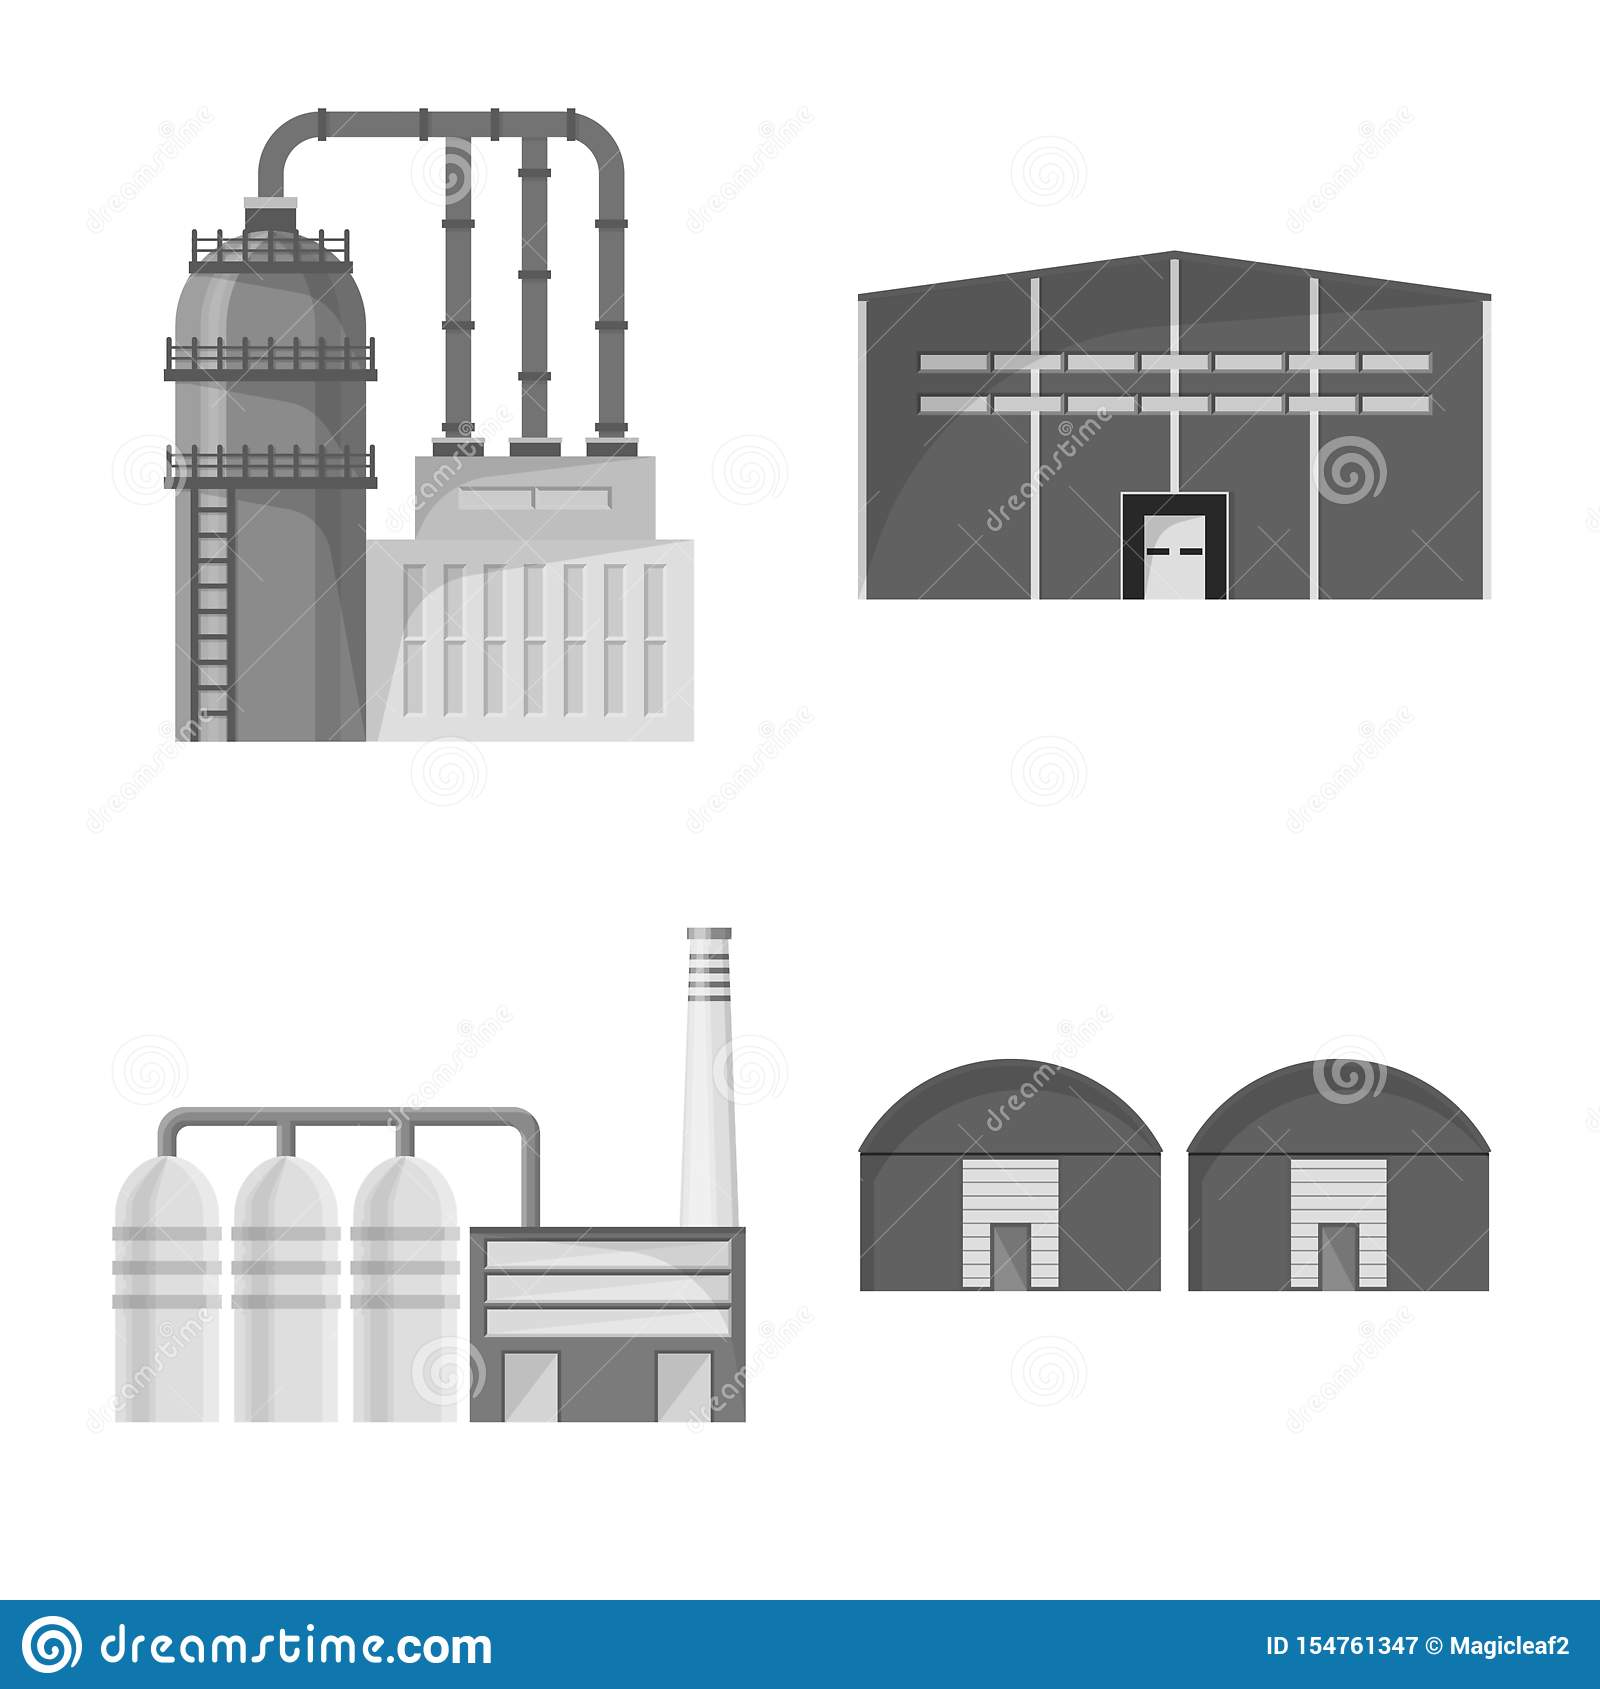 Illustration de vecteur de signe de production et de structure Placez du symbole boursier de production et de technologie pour le